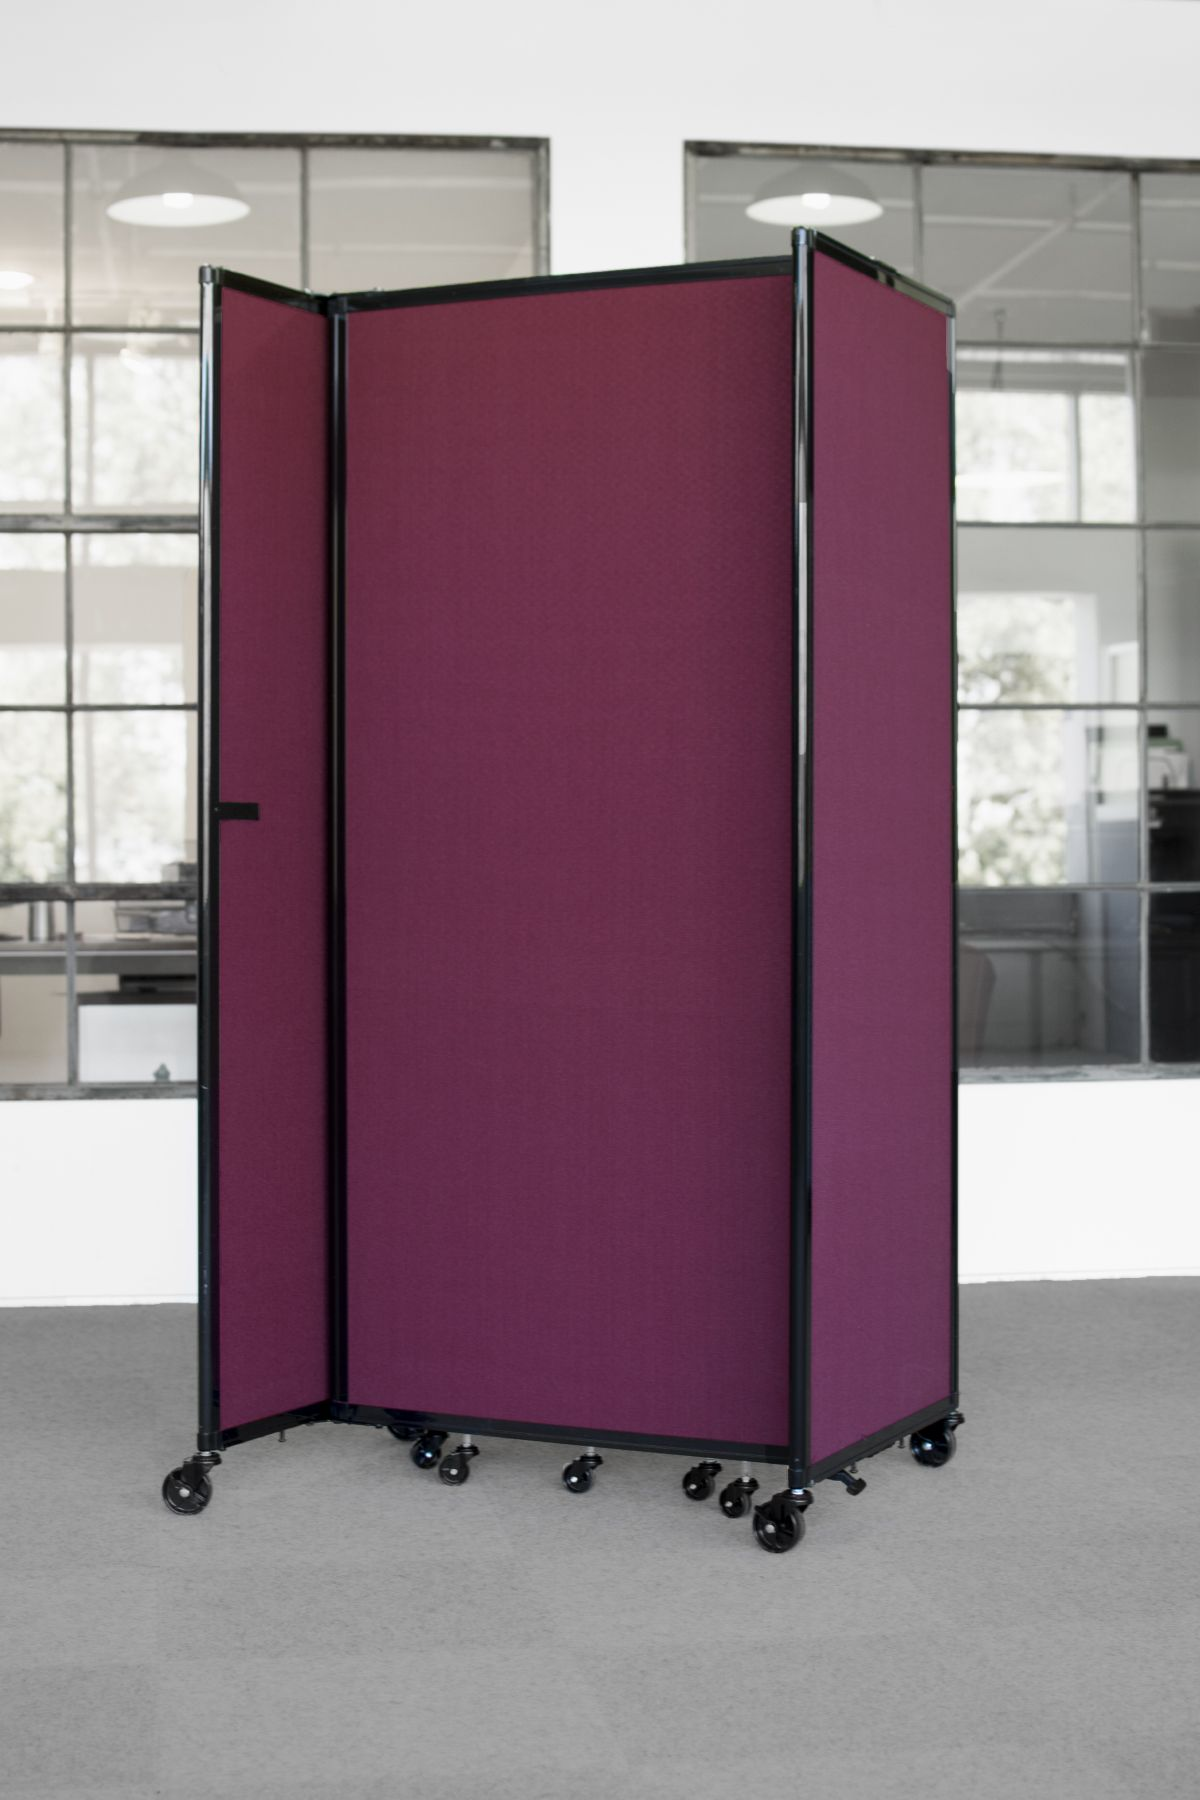 The Room Divider 360 Portable Parion